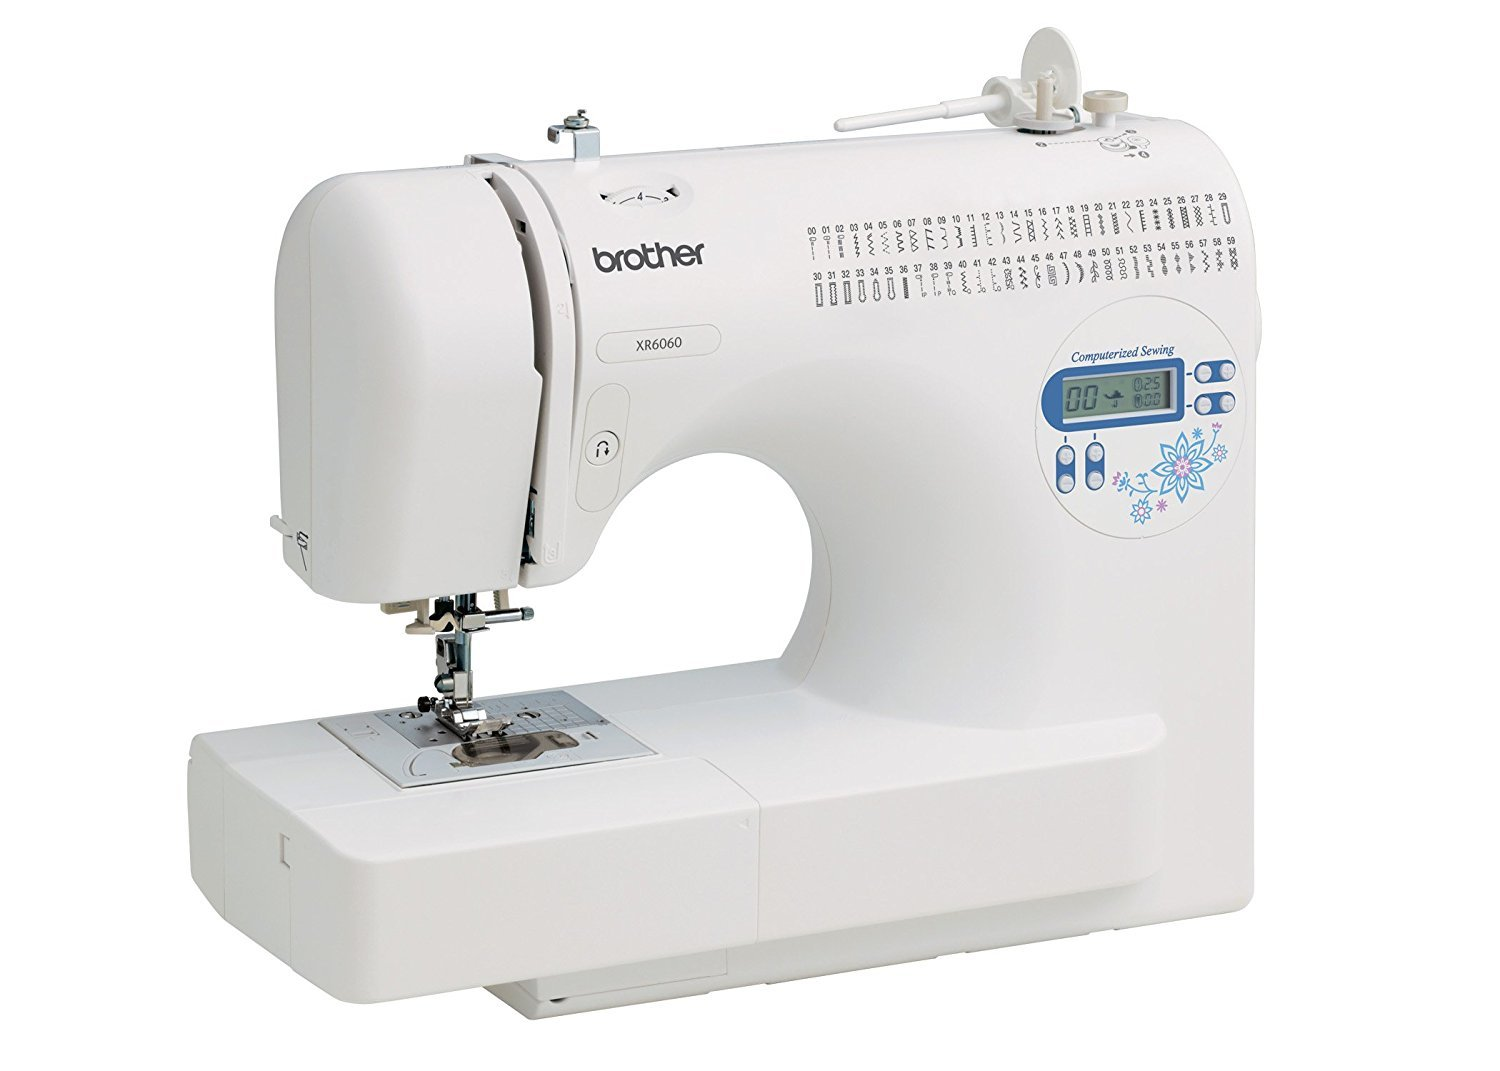 XR6060 Computerized Sewing Machine $259.99 SALE PRICE $179.99